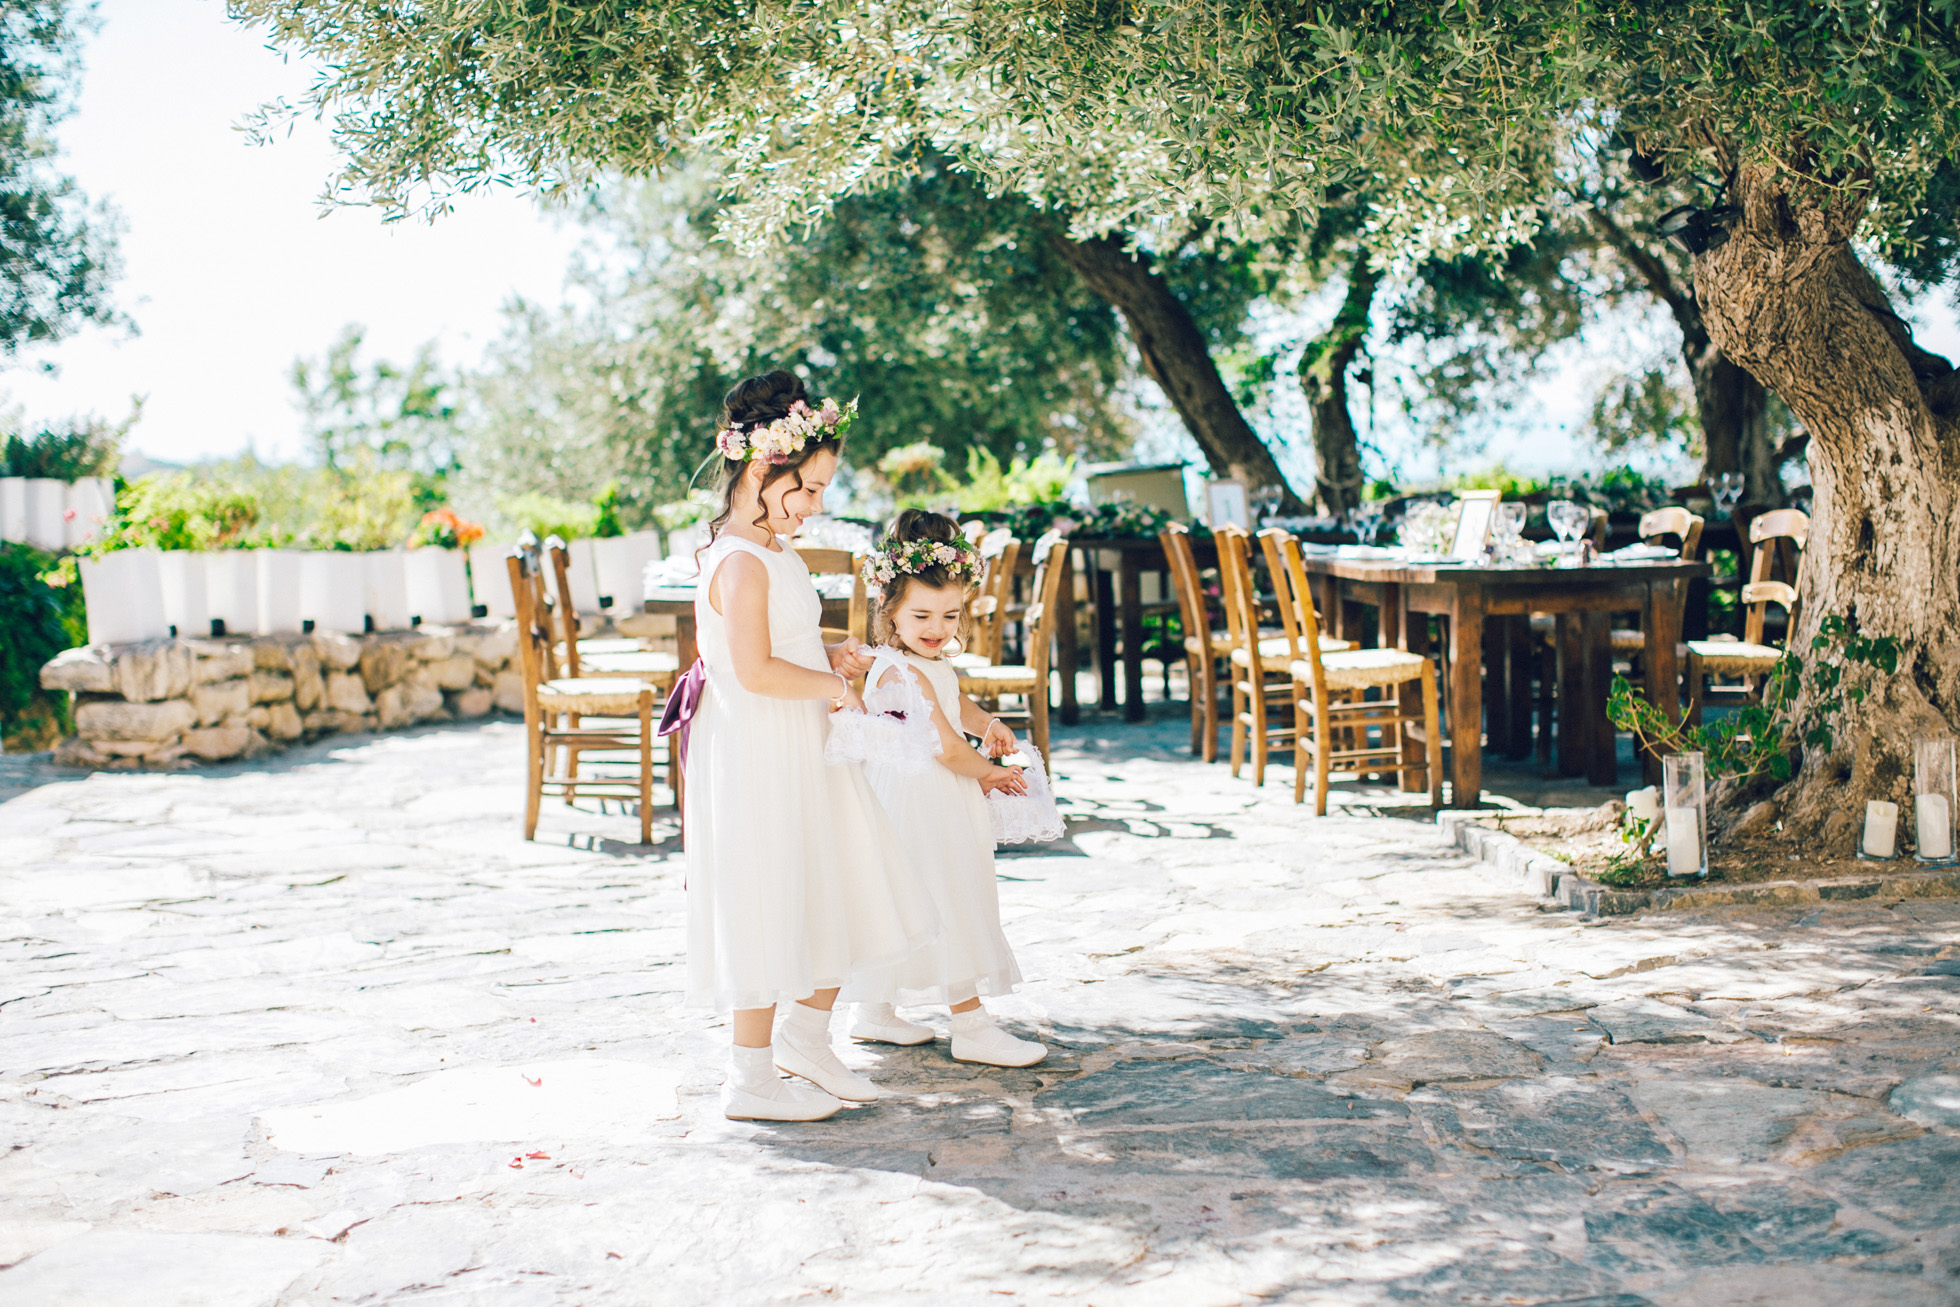 Candid image of two cute flower girls walking down the aisle into the wedding ceremony on a destination wedding day in Agreco Farm in Crete.